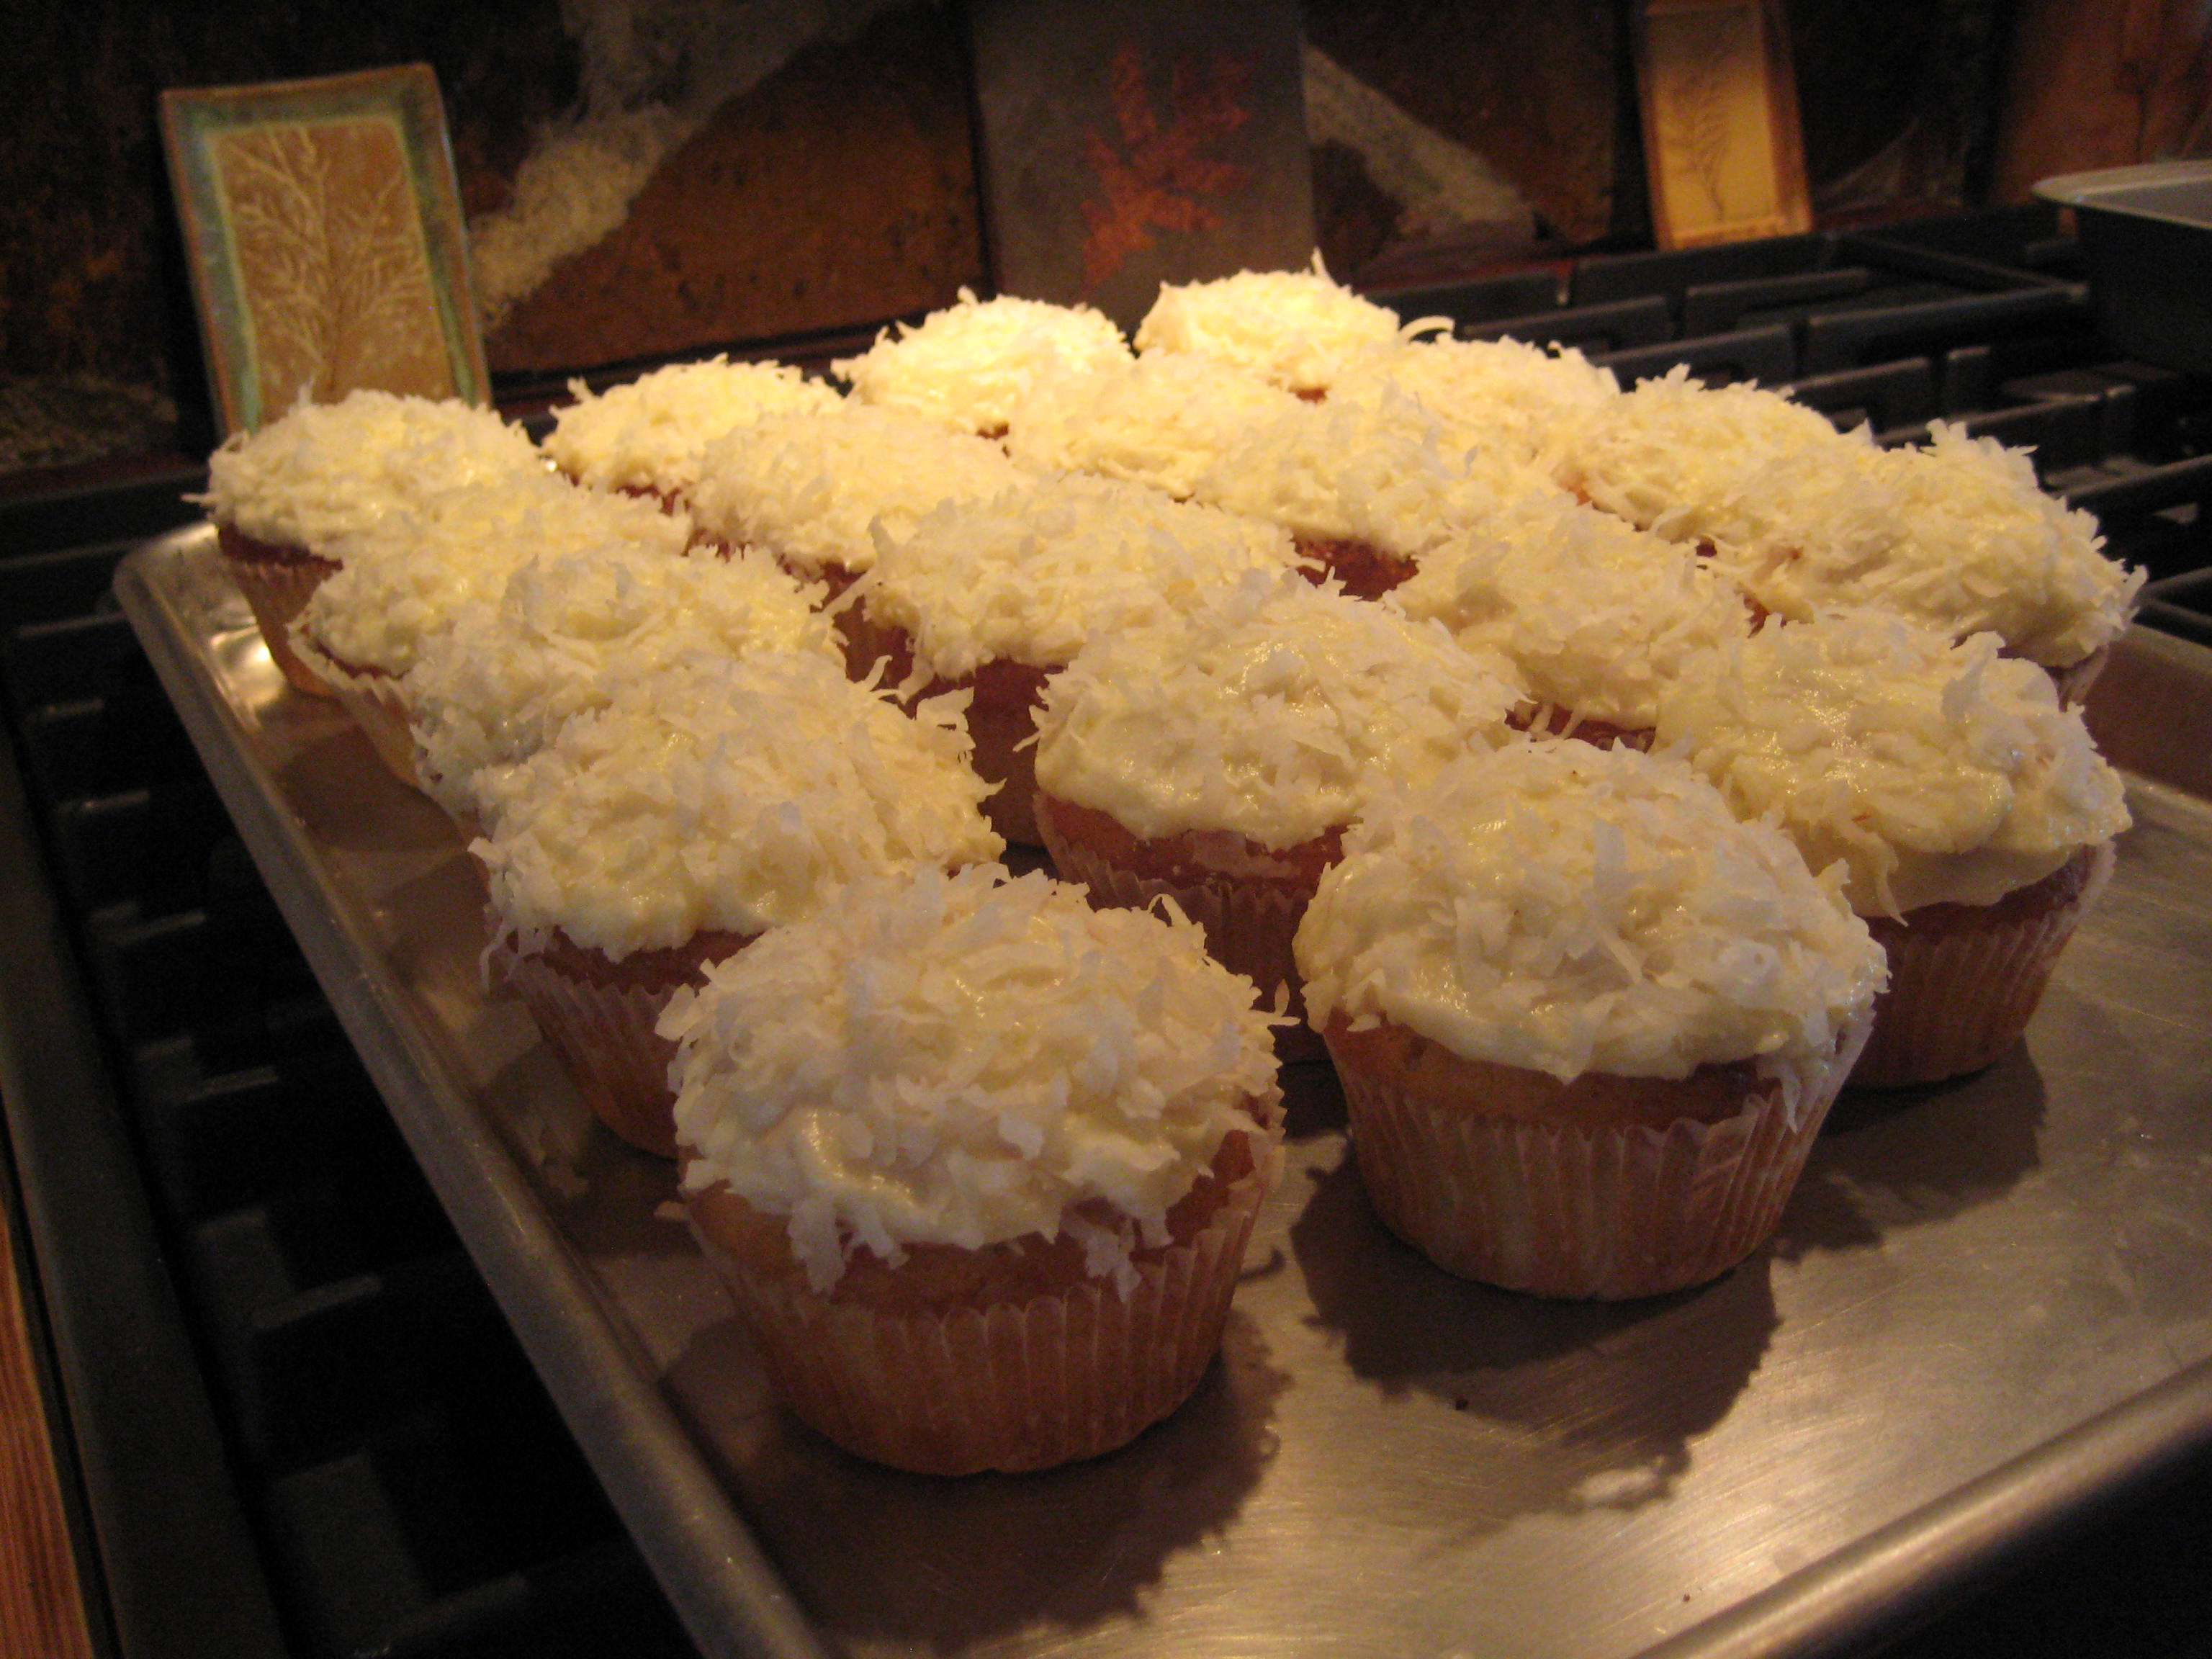 Almond Coconut Cupcakes with Cream Cheese Icing